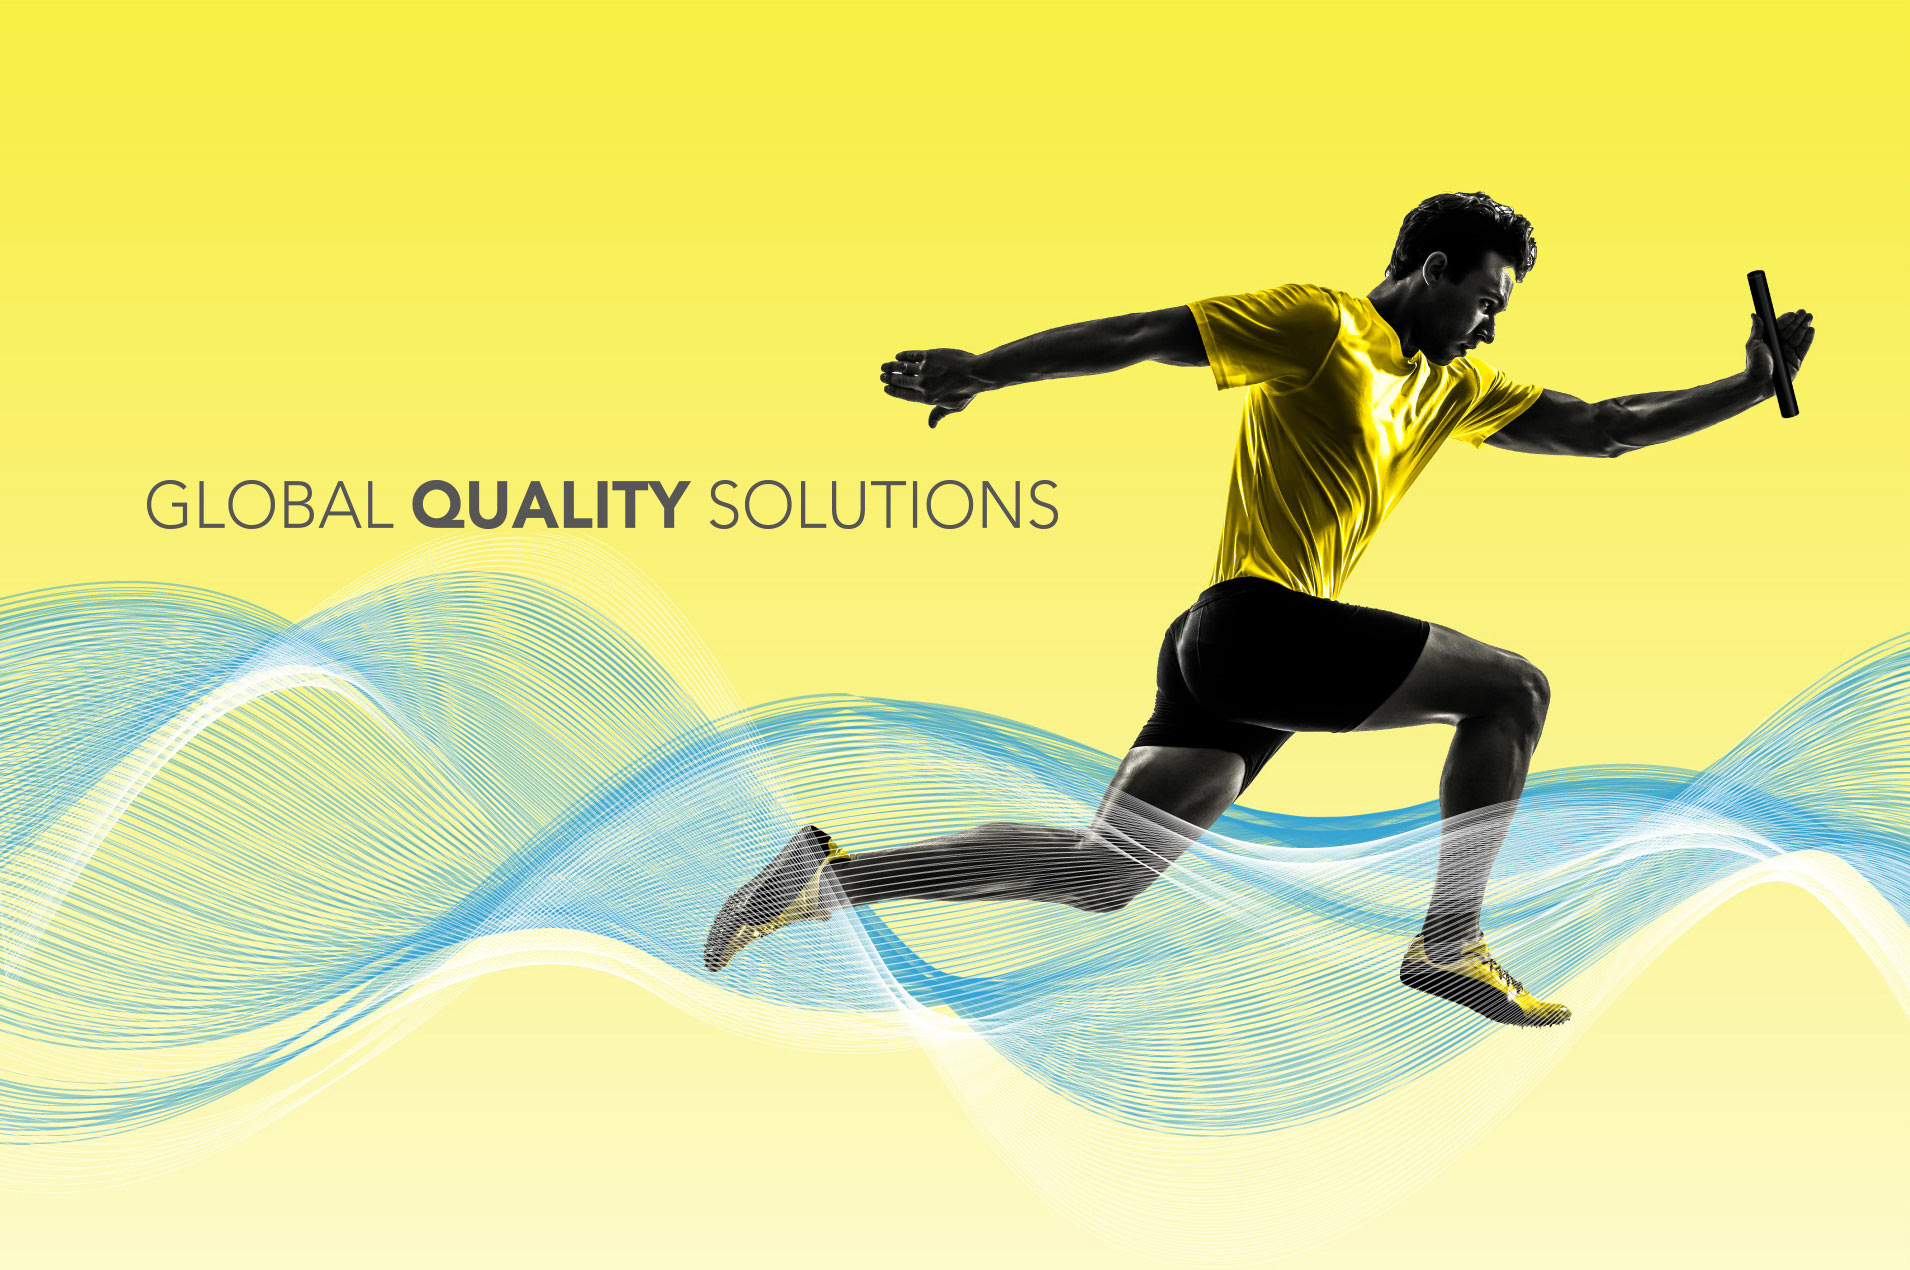 Global Quality Solutions